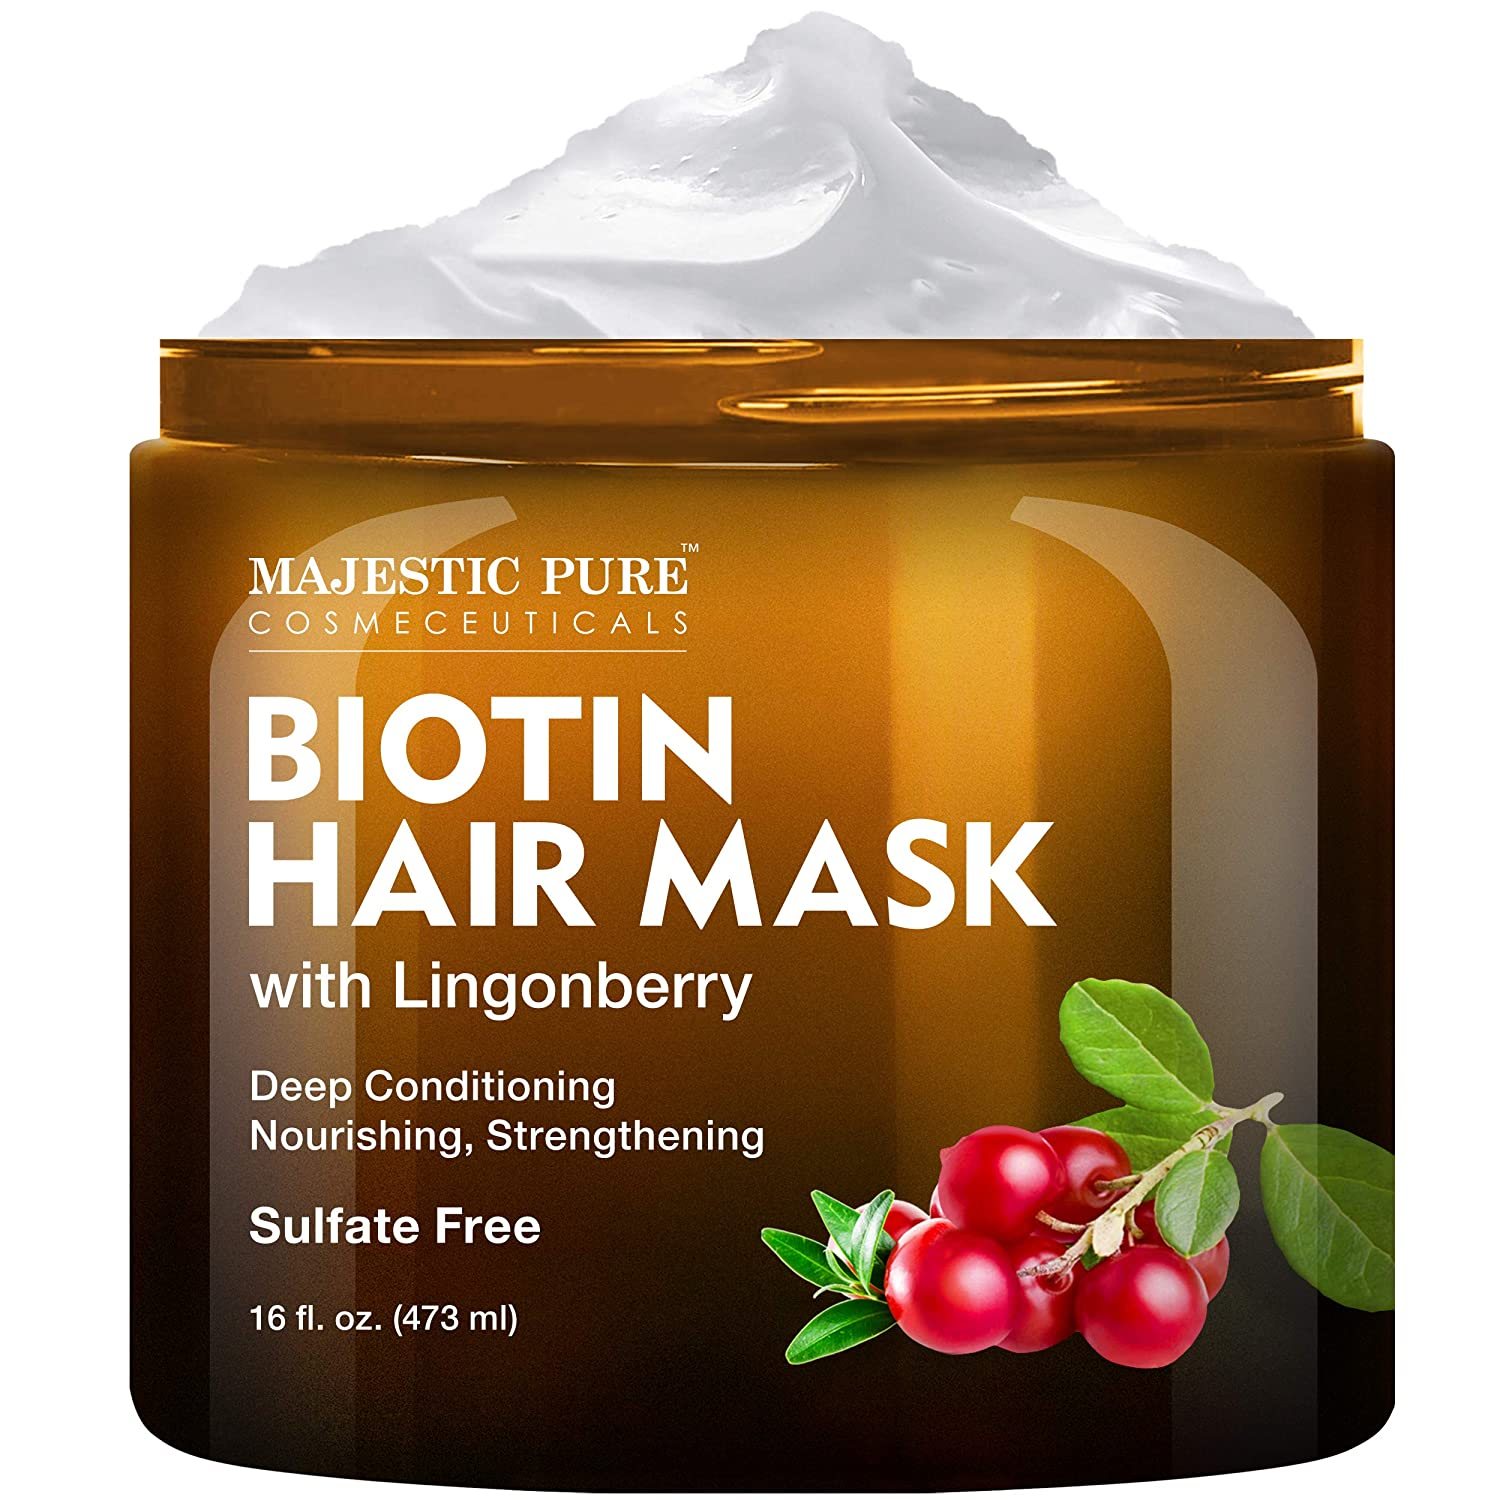 Biotin Hair Mask for Dry Damaged Hair with Lingonberry by Majestic Pure - Deep Conditioning Hair Treatment, Nourishing, and Strengthening, Sulfate Free, 16 fl oz